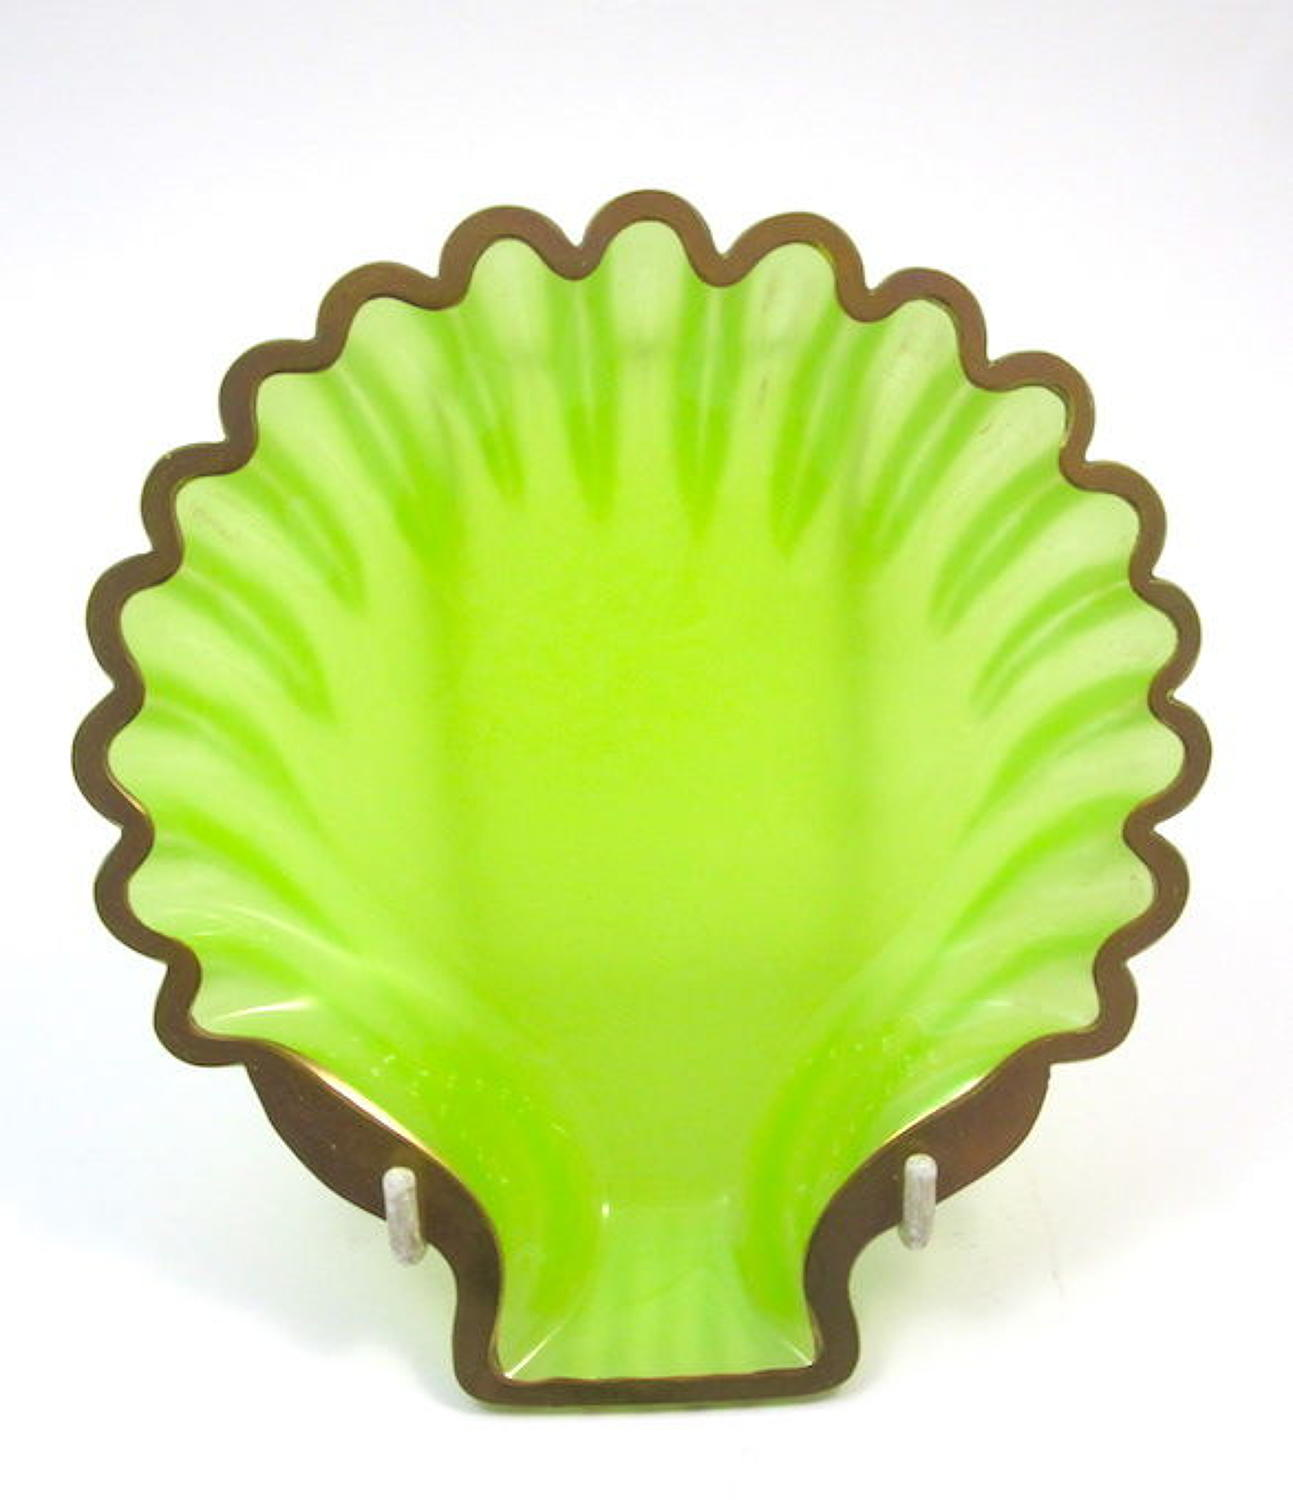 Antique French Green Opaline Glass Scallop Shell Dish